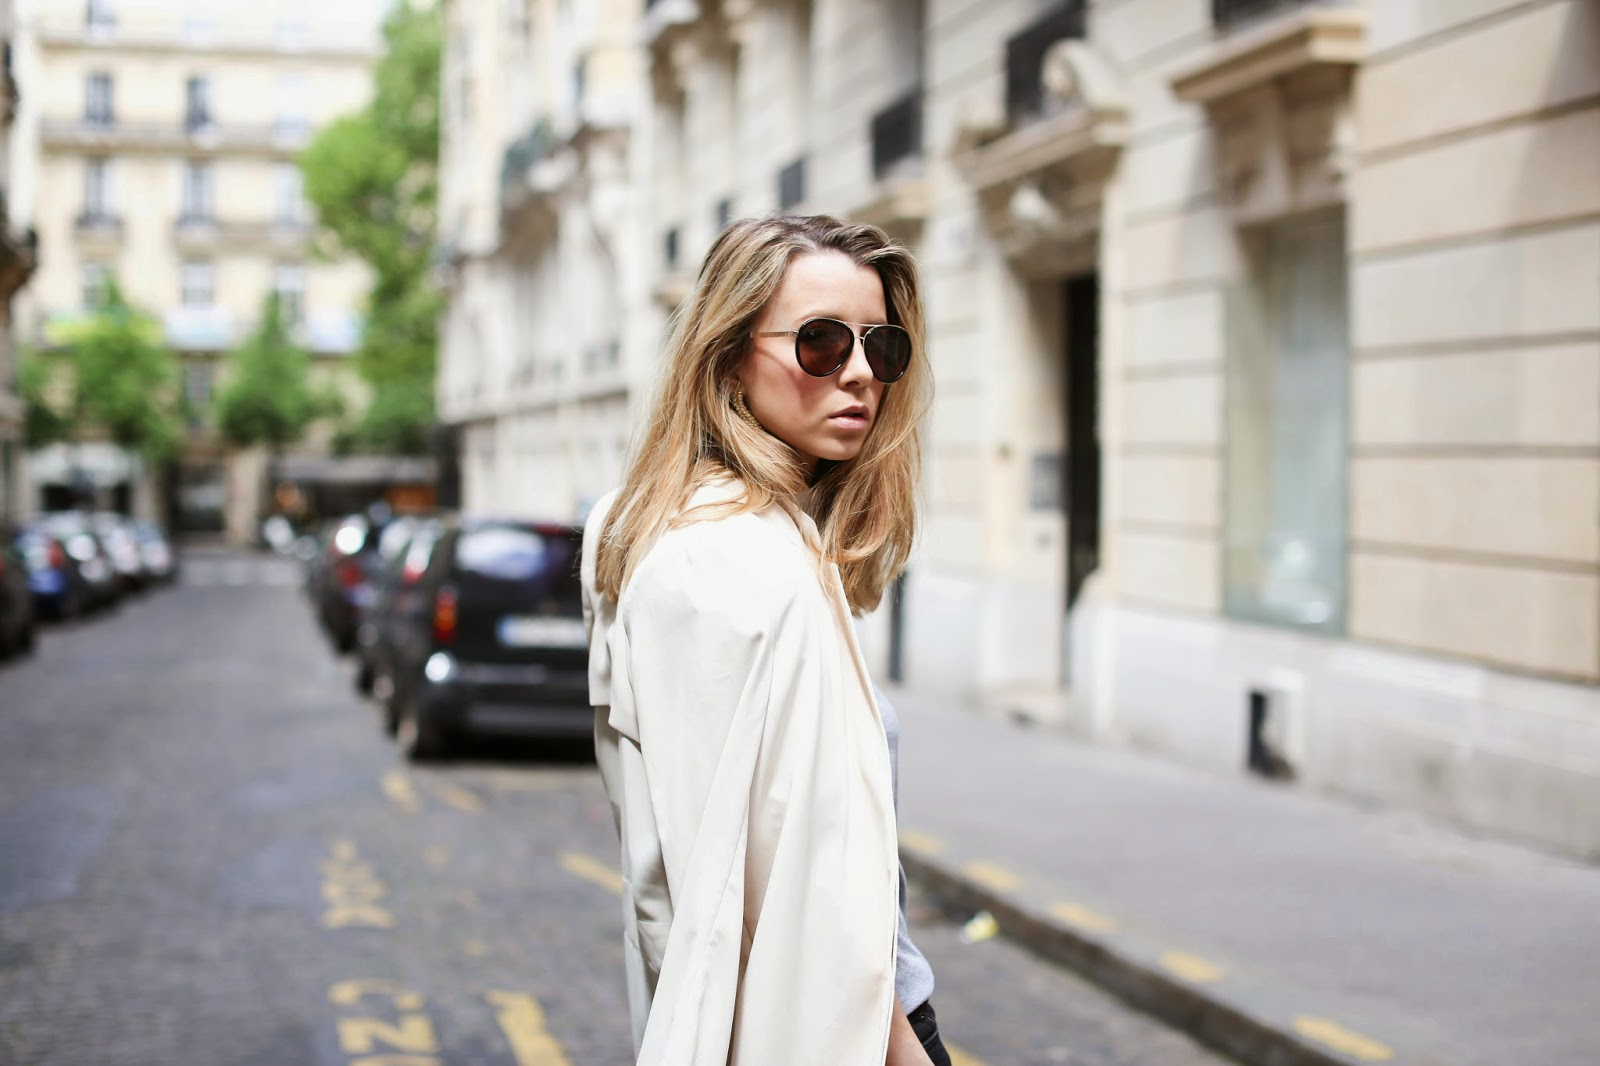 heels, pardonmyobsession, streetstyle, house of cb, superfine, céline, paris, joanna laura constantine, samantha wills